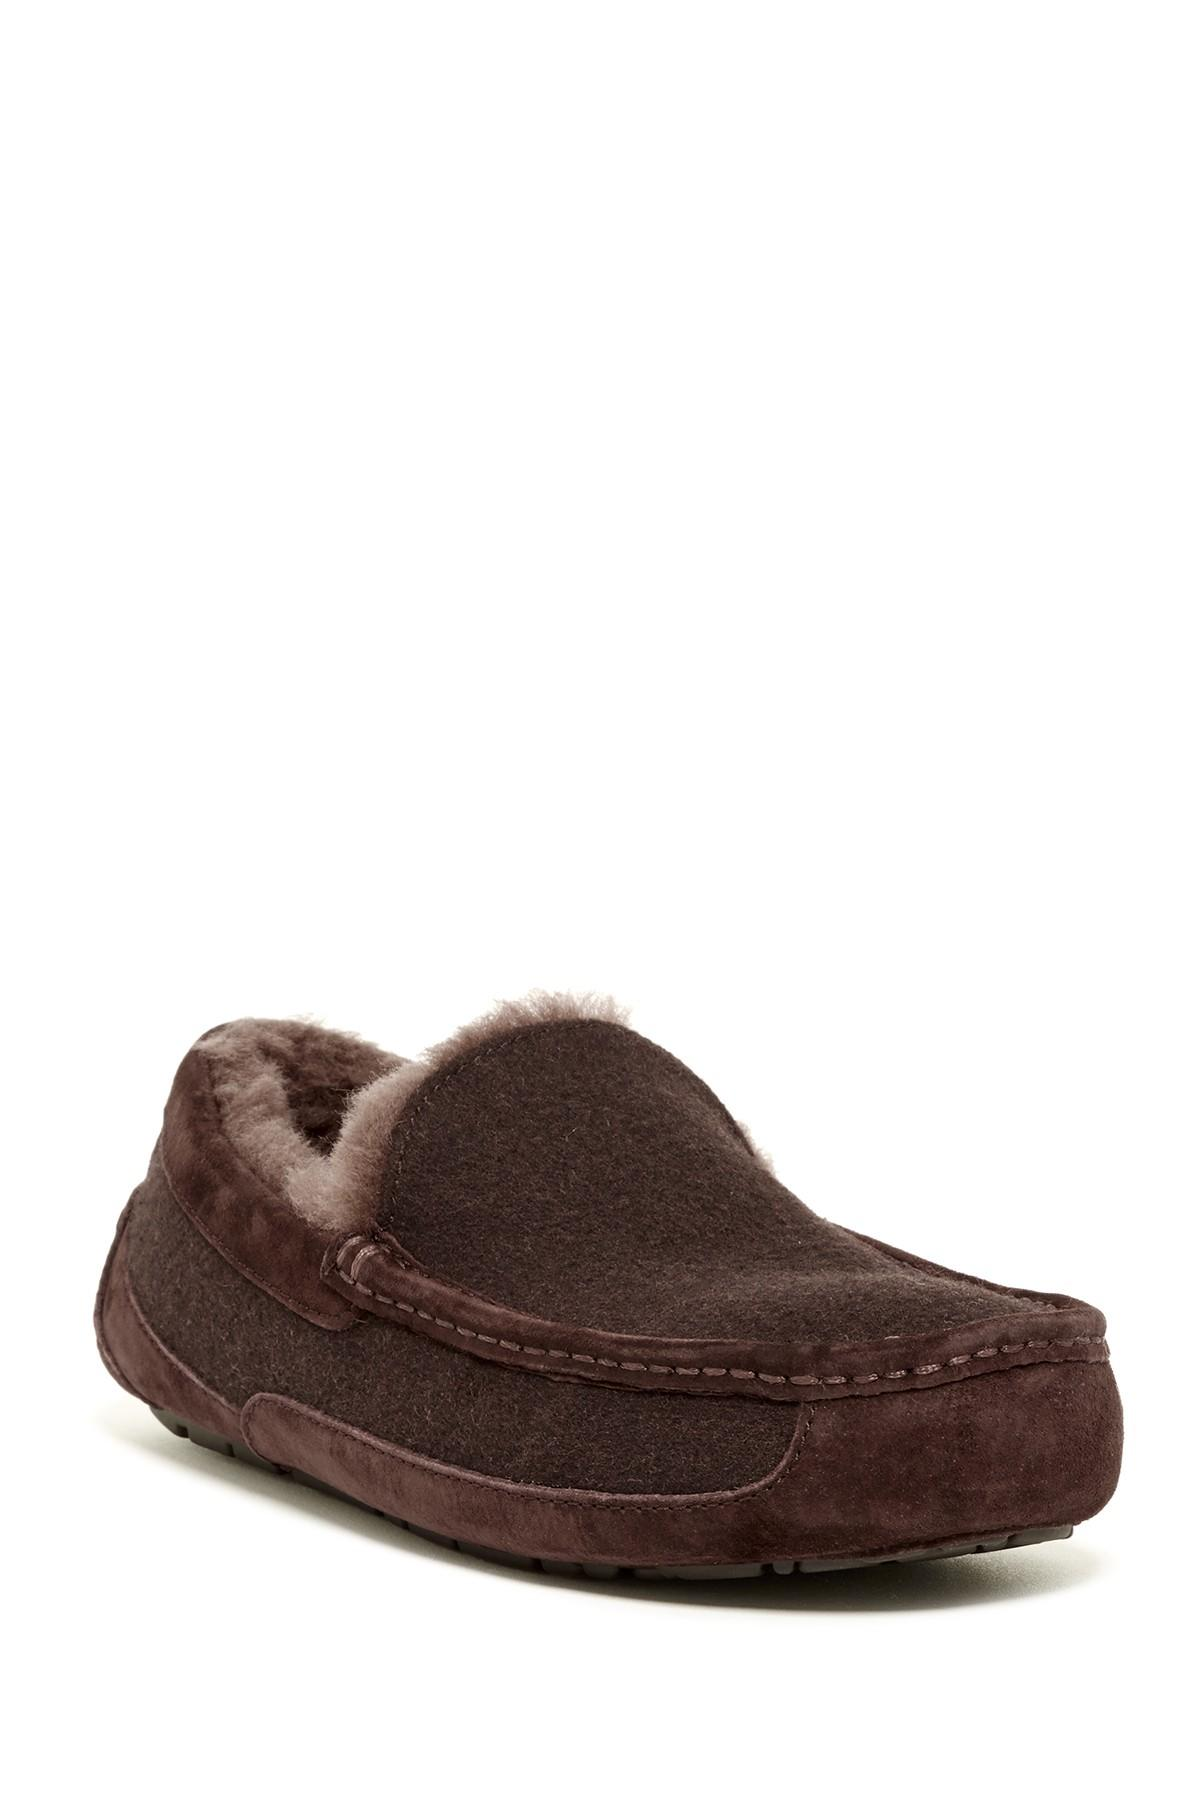 4ed622f7b1b Men's Brown Ascot Uggpure(tm) Slipper